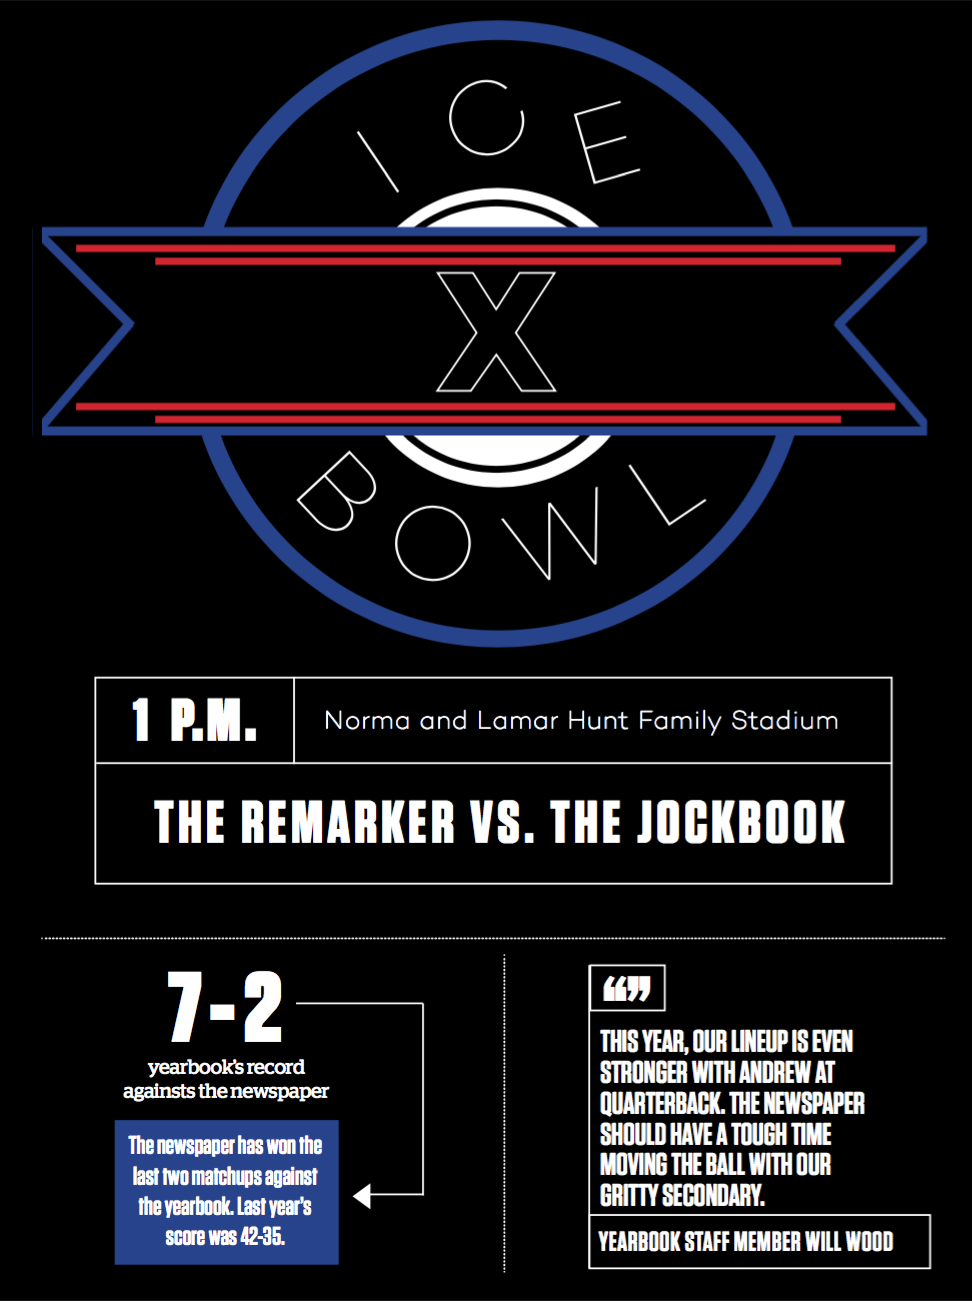 The posters I designed for this year's Ice Bowl.